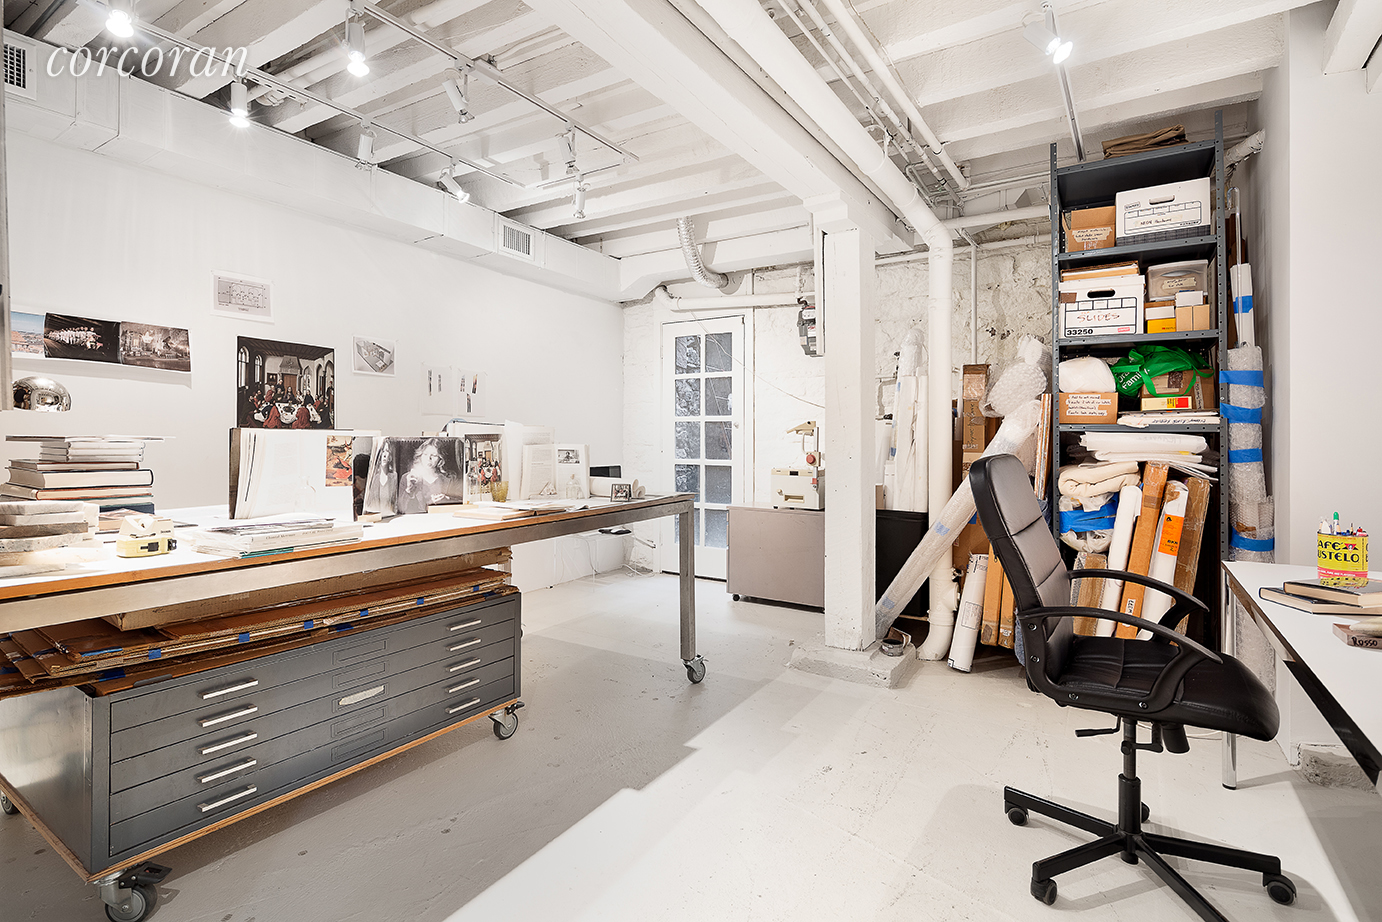 An added bonus is the basement level workshop which means the carriage house is an idea live/work space